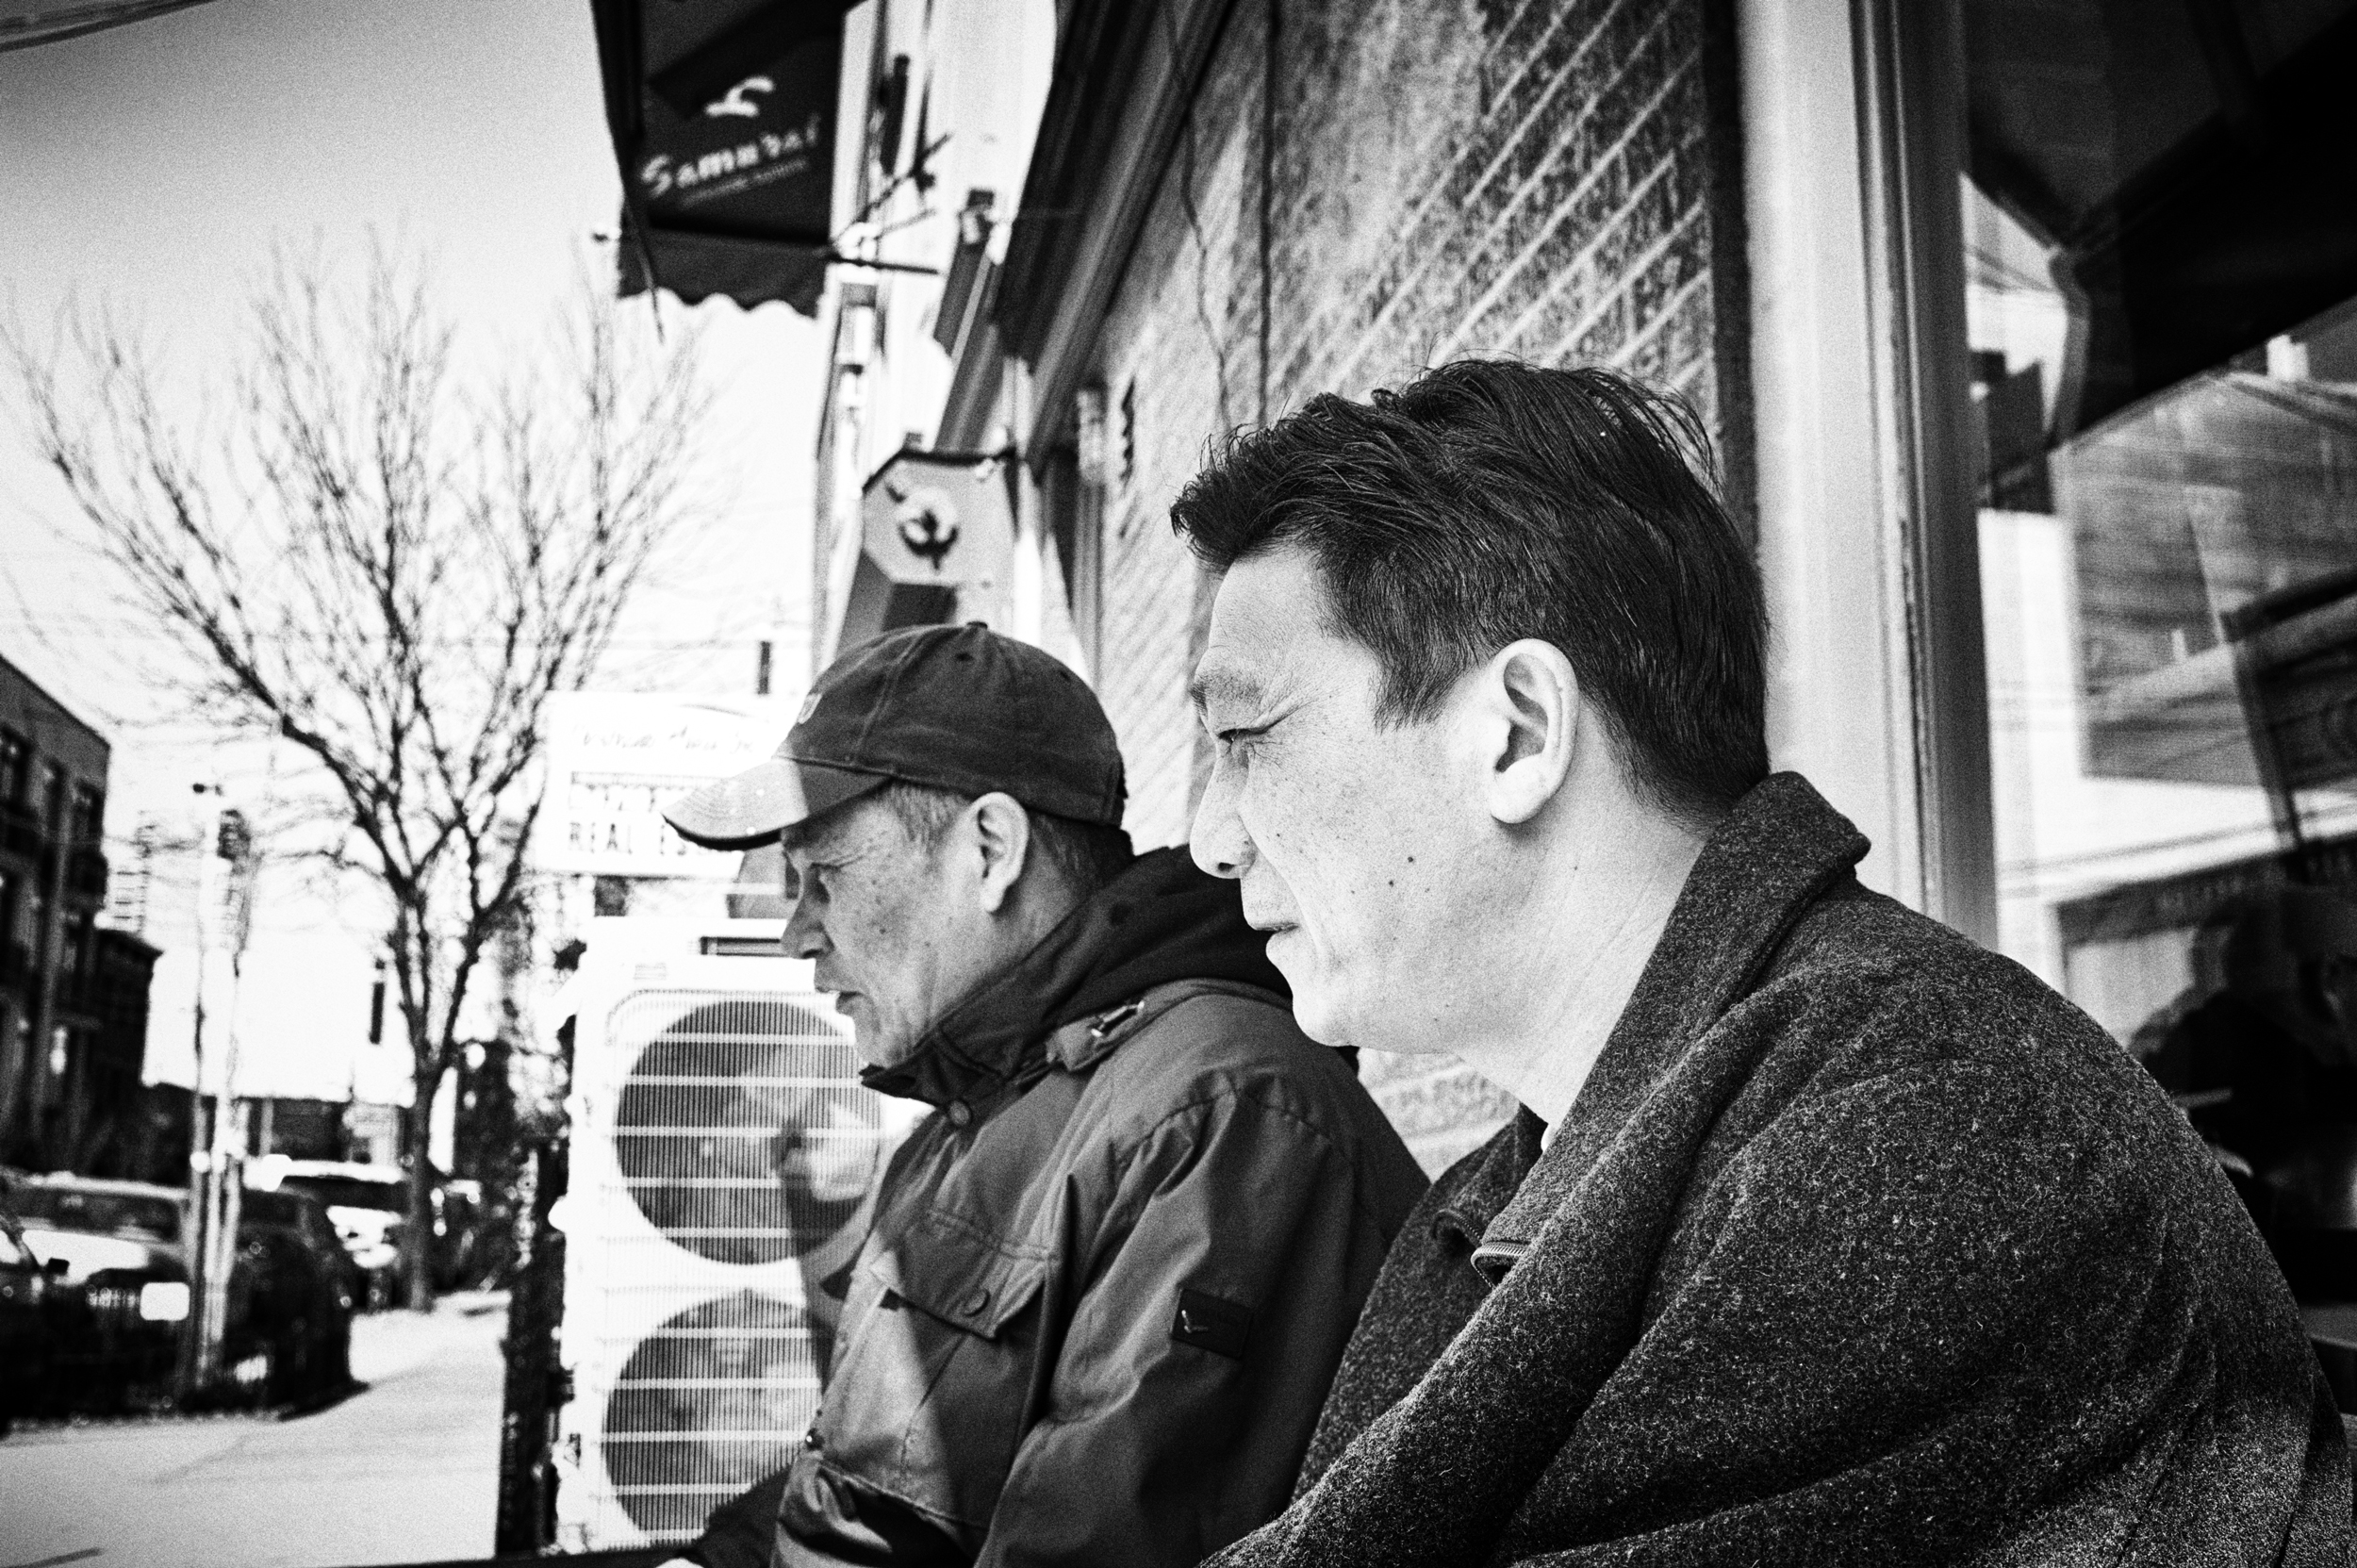 father & son, williamsburg ny